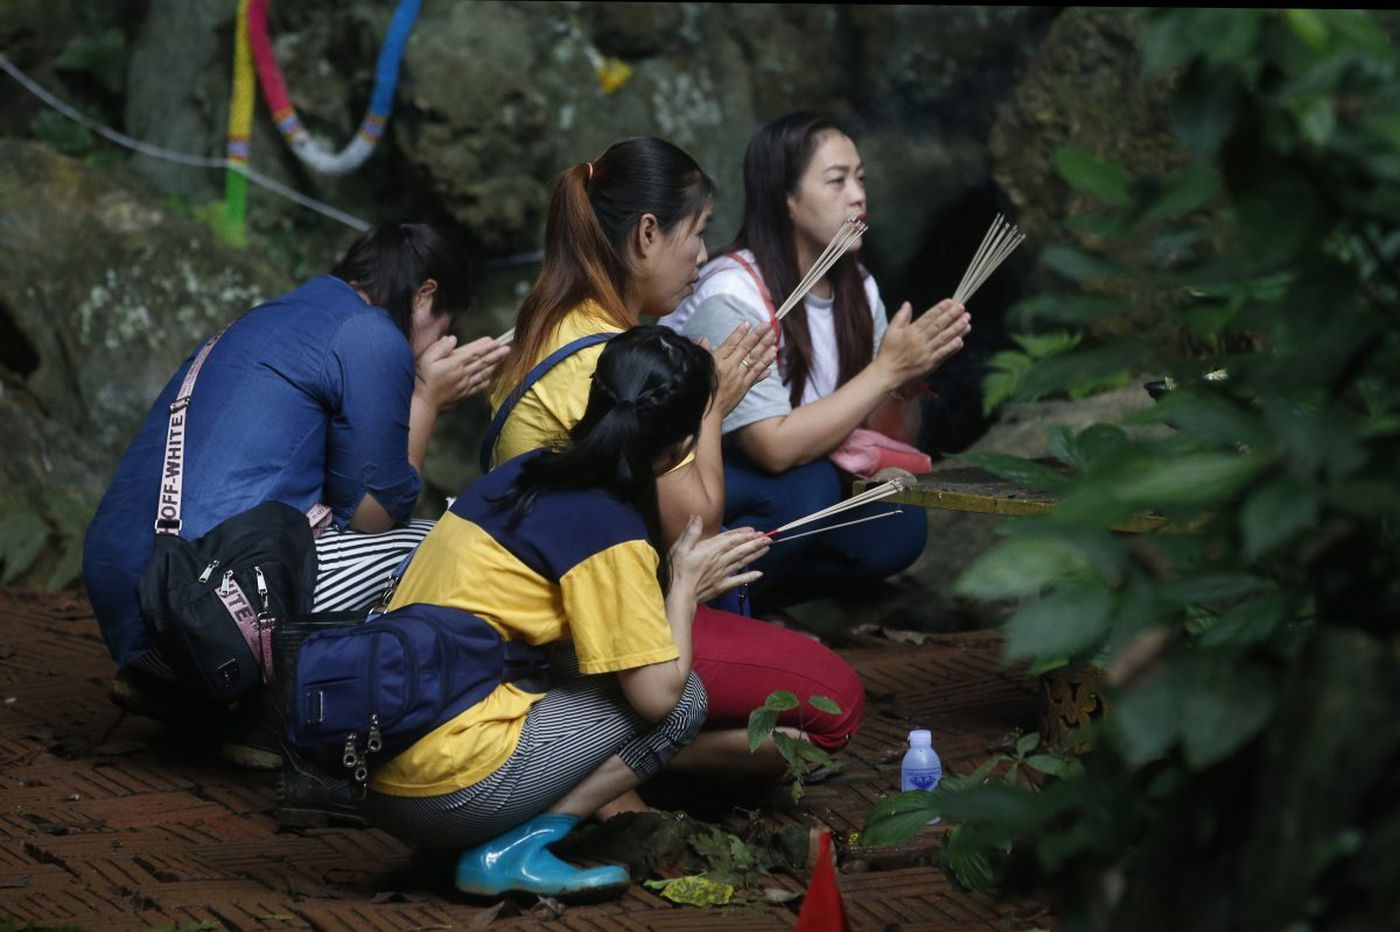 The world shows its love to kids in a Thai cave. We need that same love for kids at the border | Will Bunch